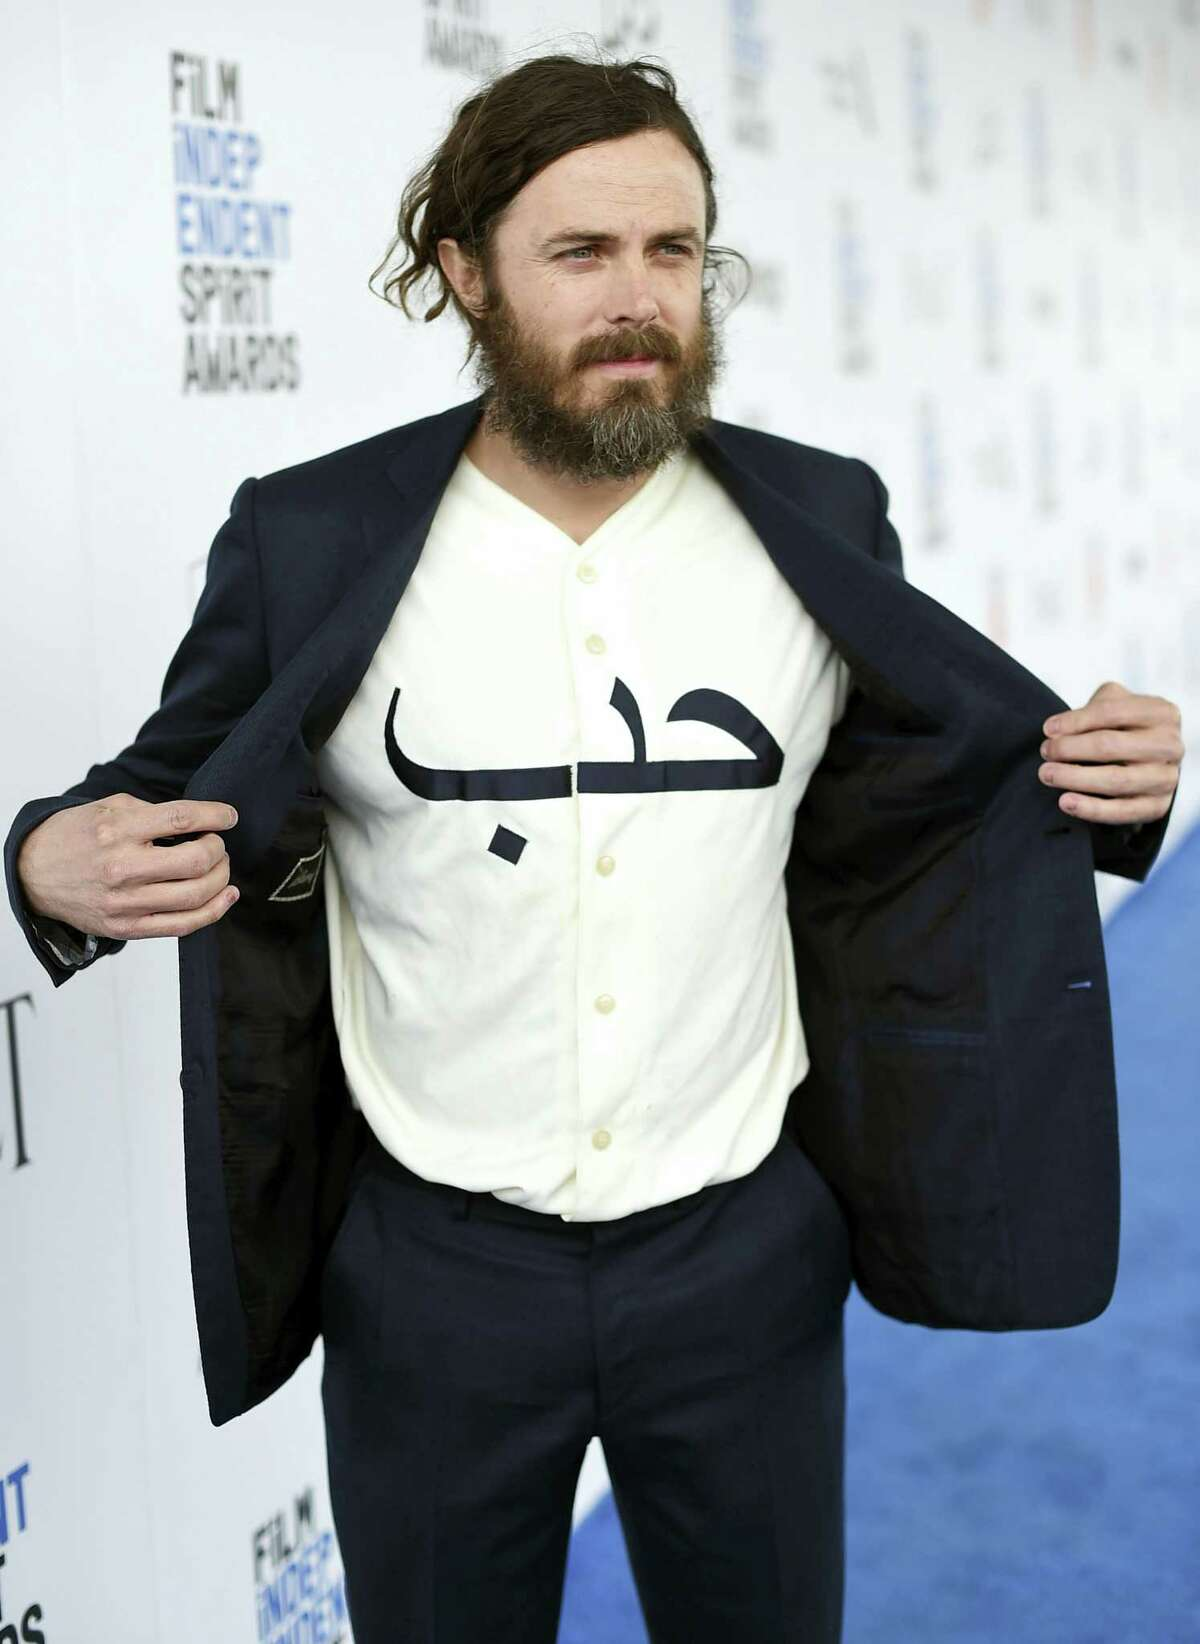 """Casey Affleck displays his shirt with the Arabic word """"love"""" as he arrives at the Film Independent Spirit Awards on Feb. 25, 2017 in Santa Monica, Calif."""